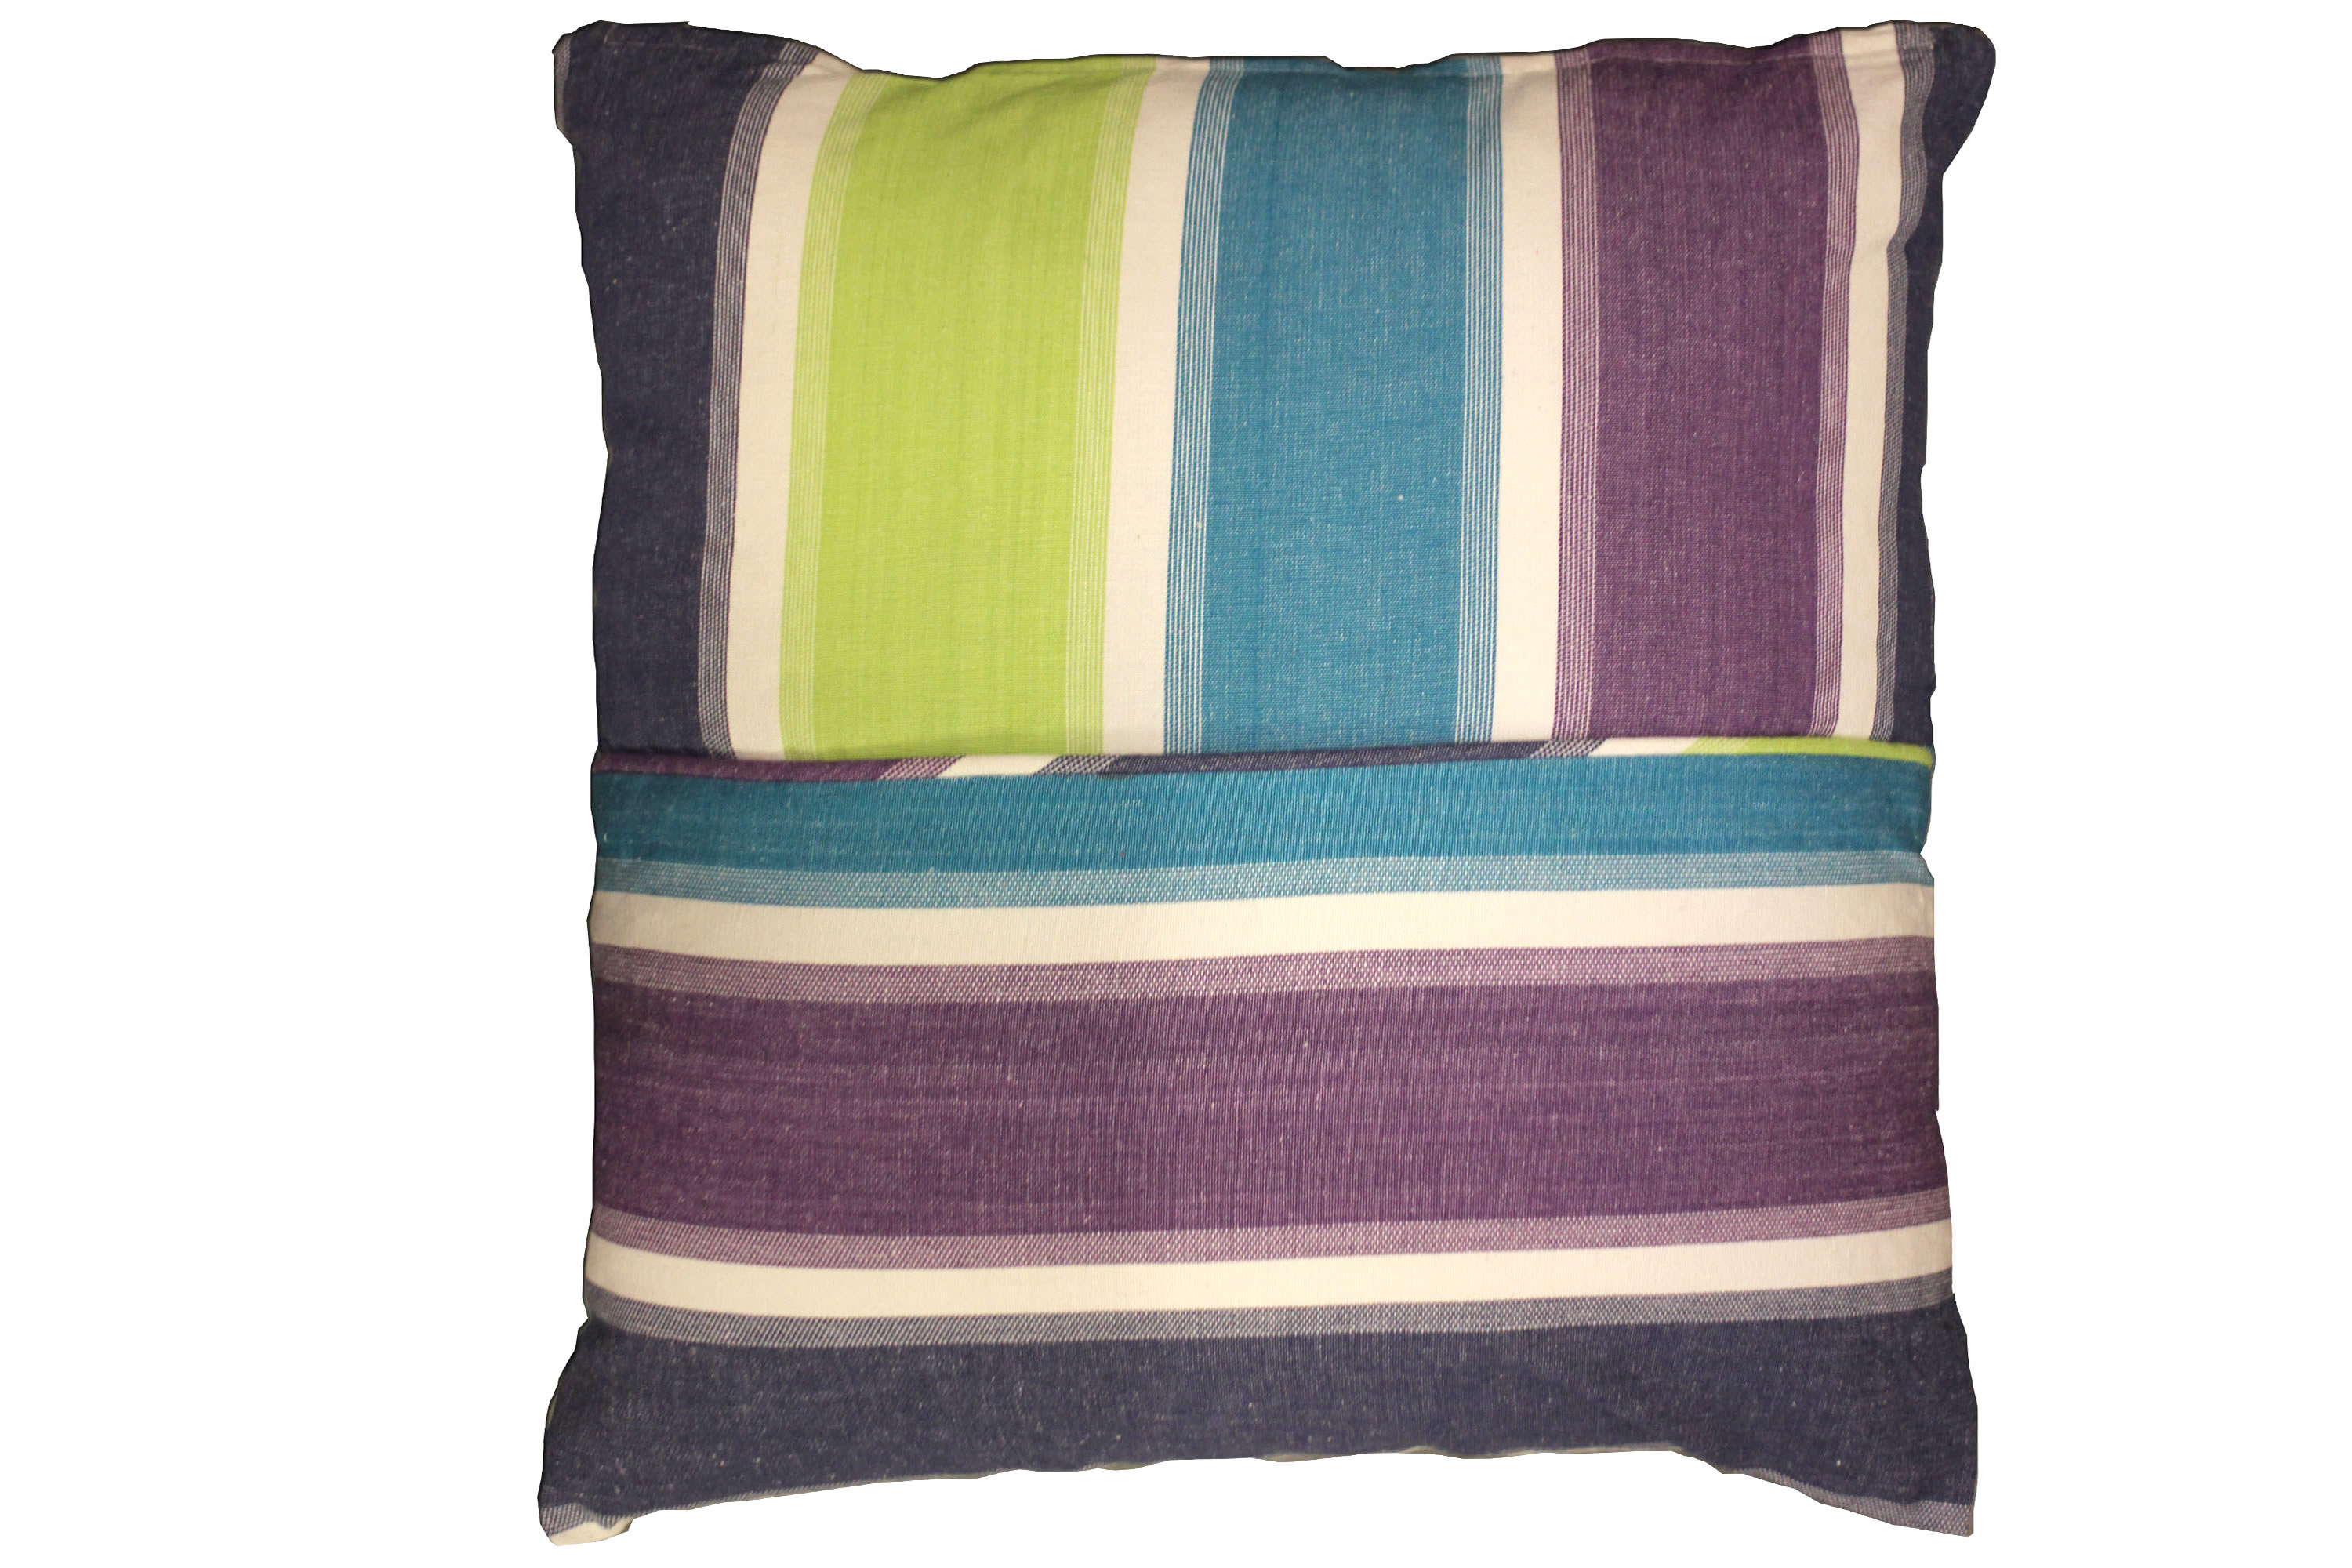 Striped Scatter Cushions - lime green, turquoise, white, navy, purple stripes